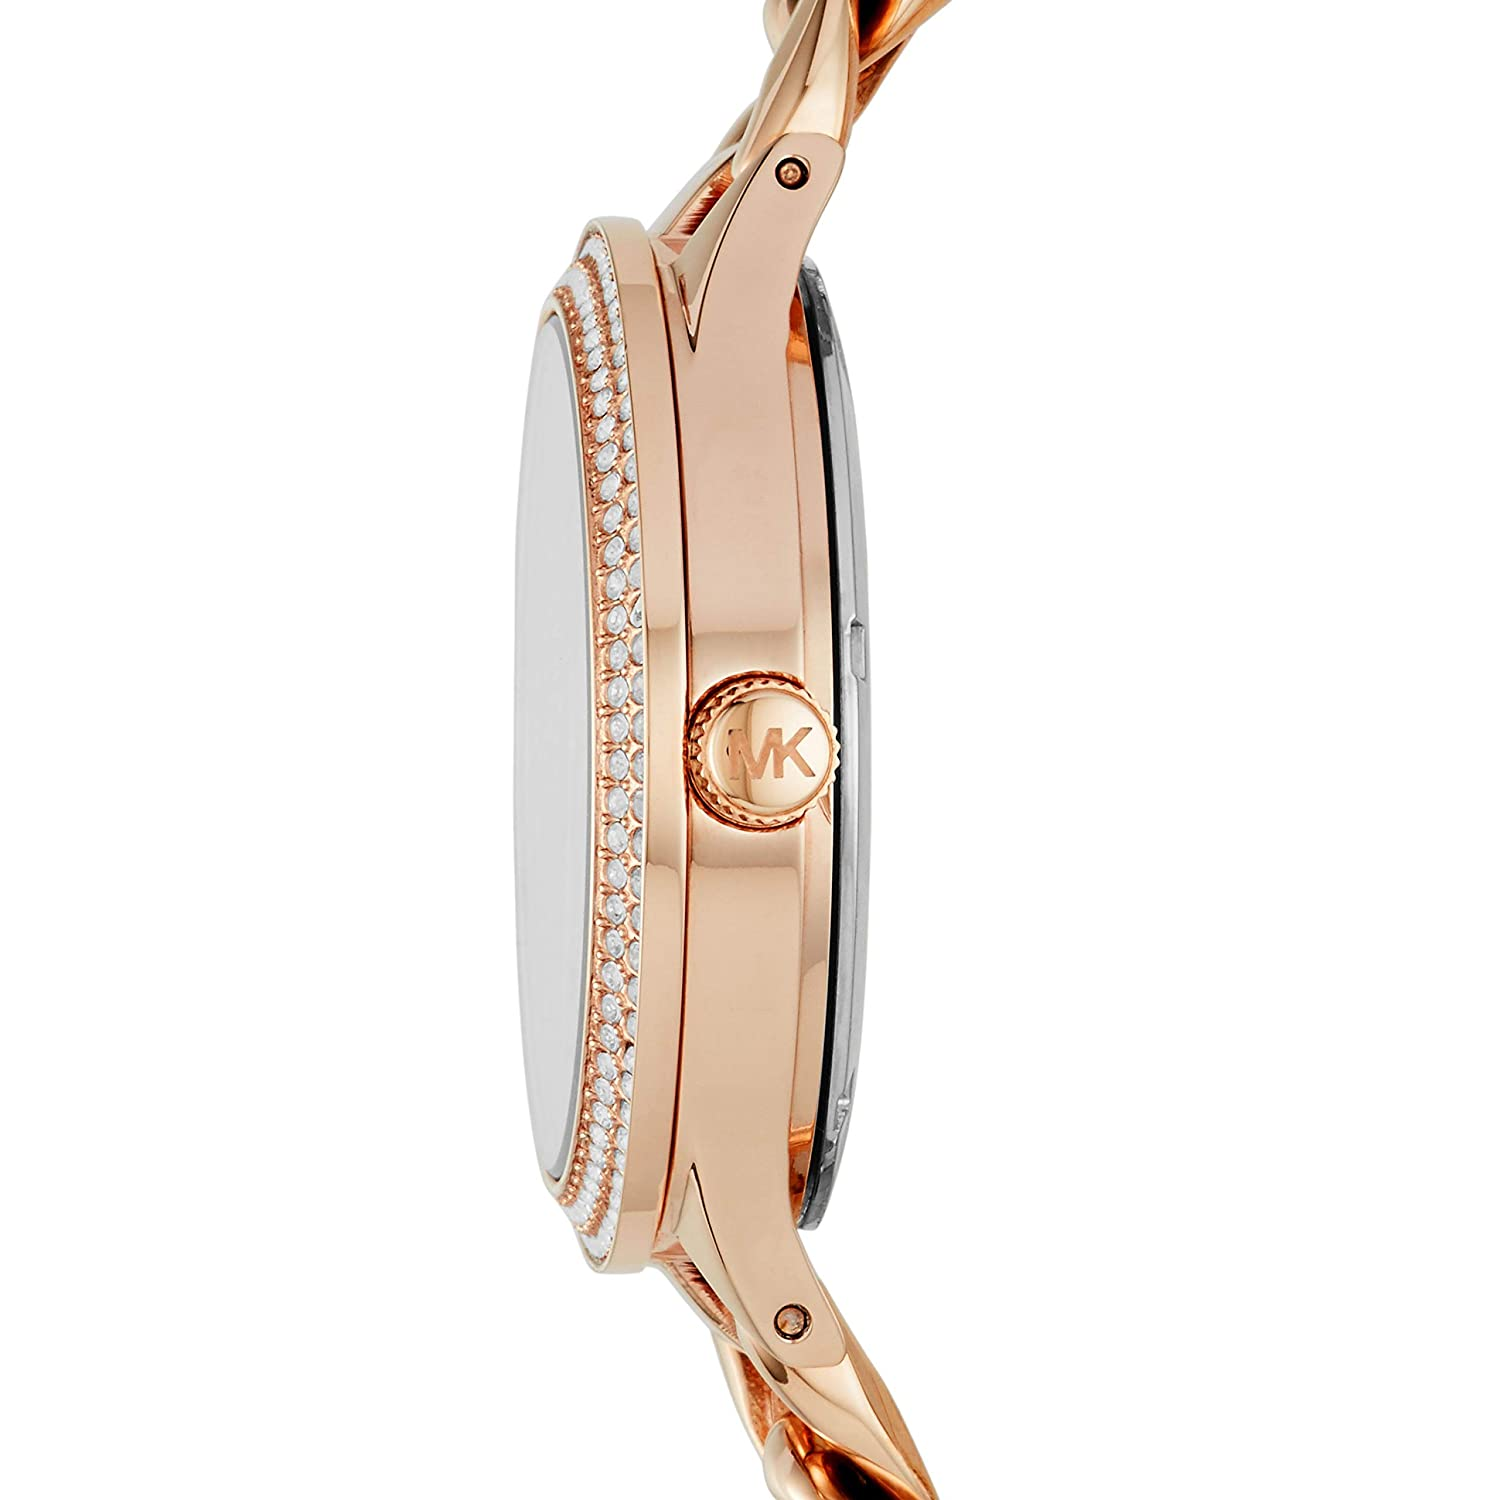 34d0f00542ae Amazon.com  Michael Kors Women s 38mm Rose Goldtone Pav  Slim Runway Chain  Link Watch  Watches